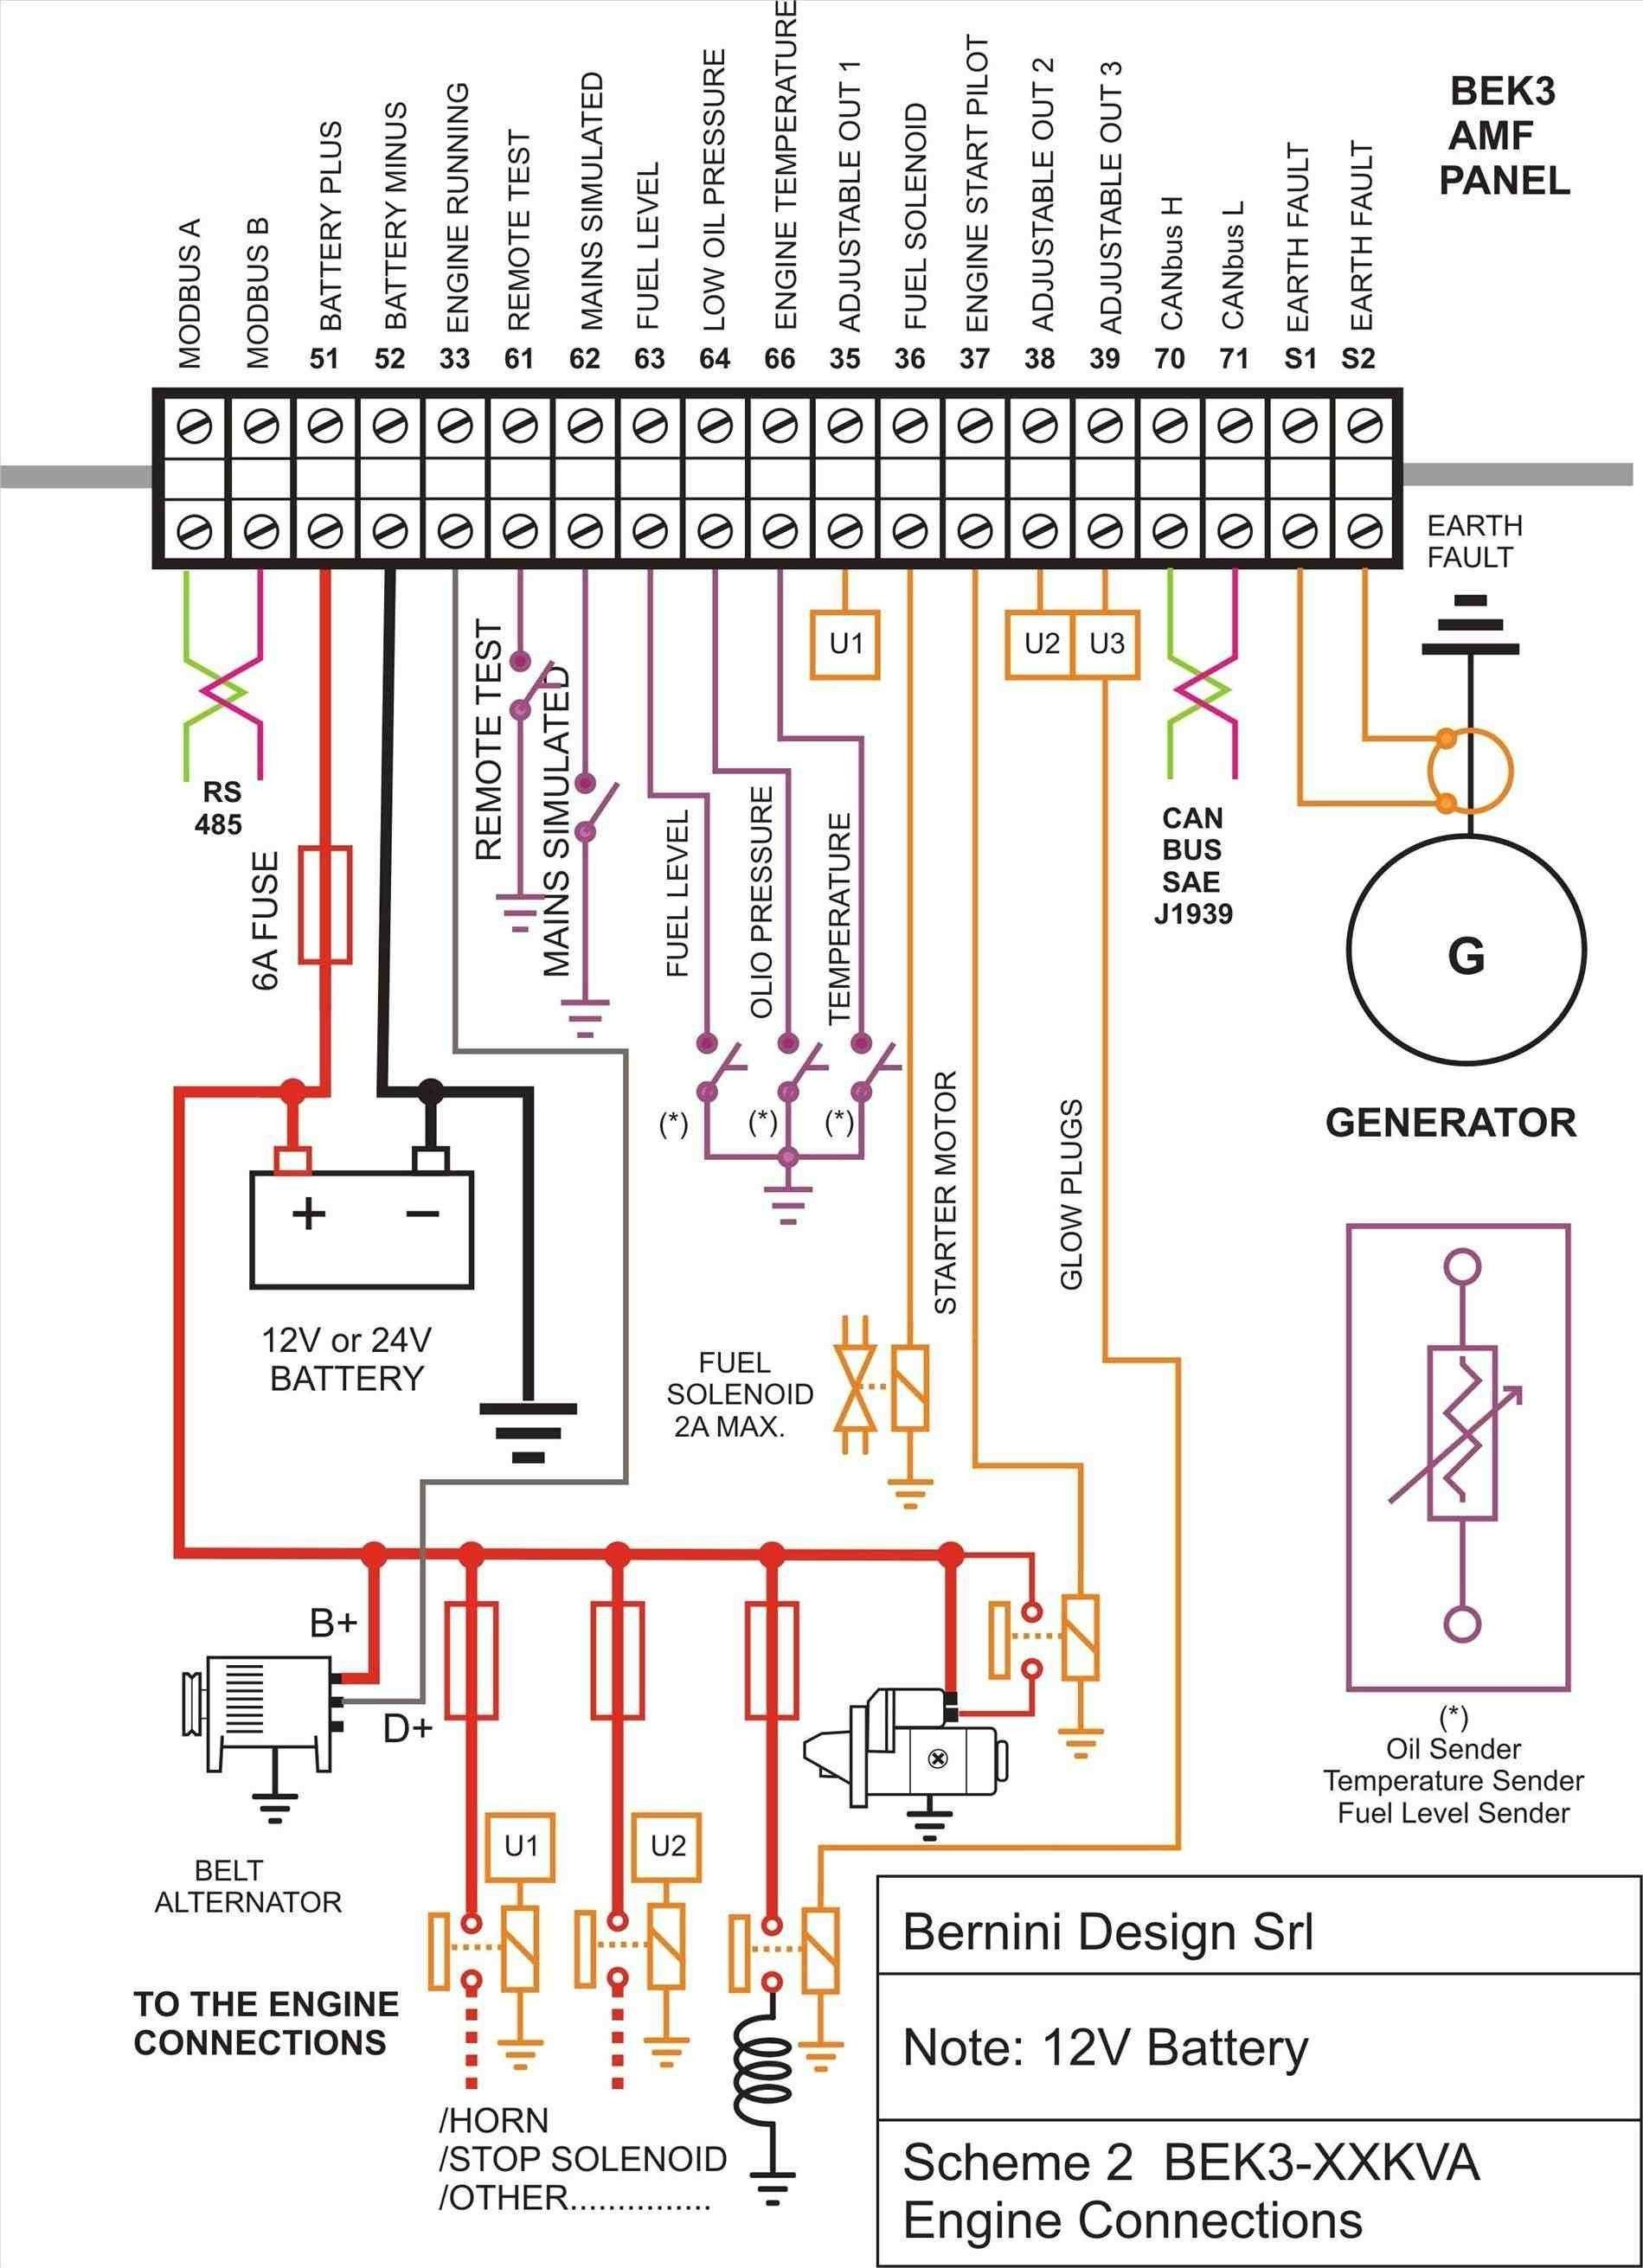 738bc0b fg wilson control panel wiring diagram | wiring diagram library  wiring diagram library